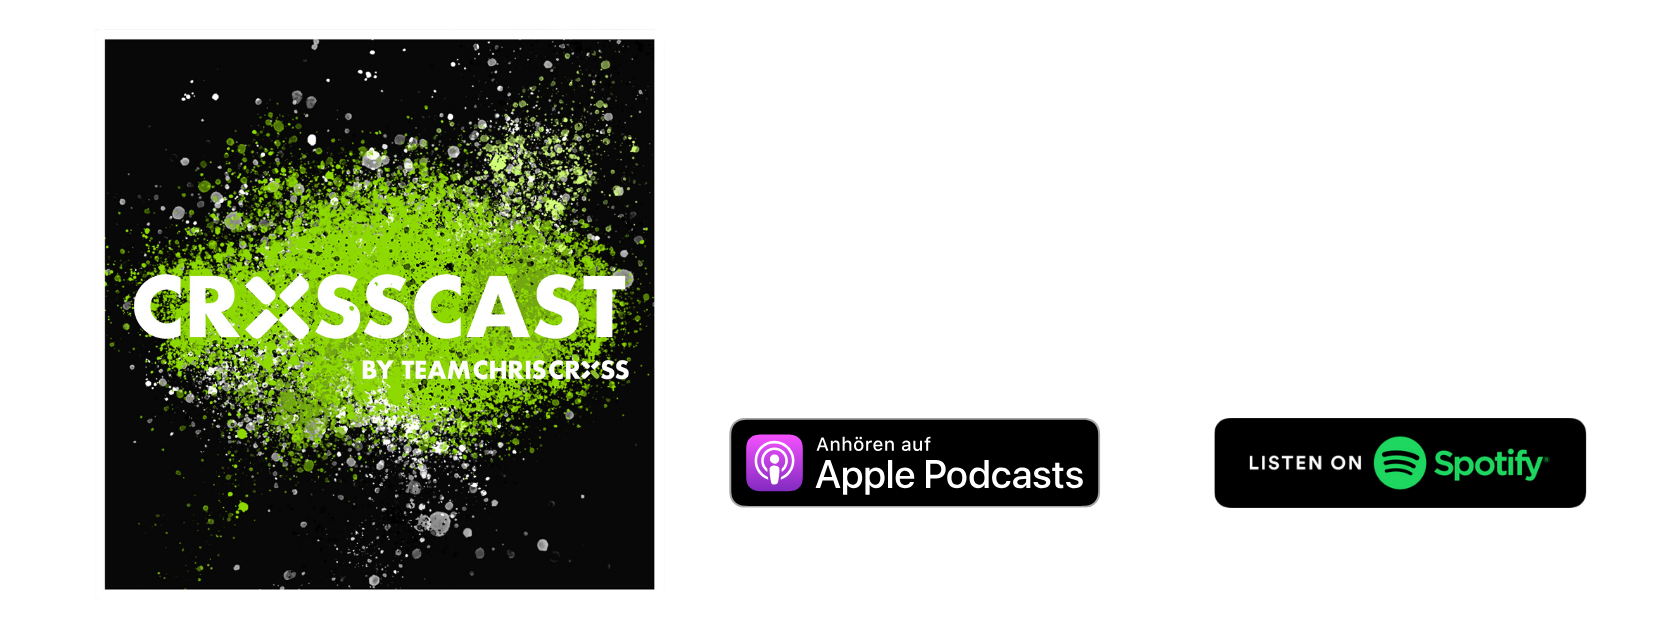 Crosscast - Der OCR Podcast von Team Chris Cross